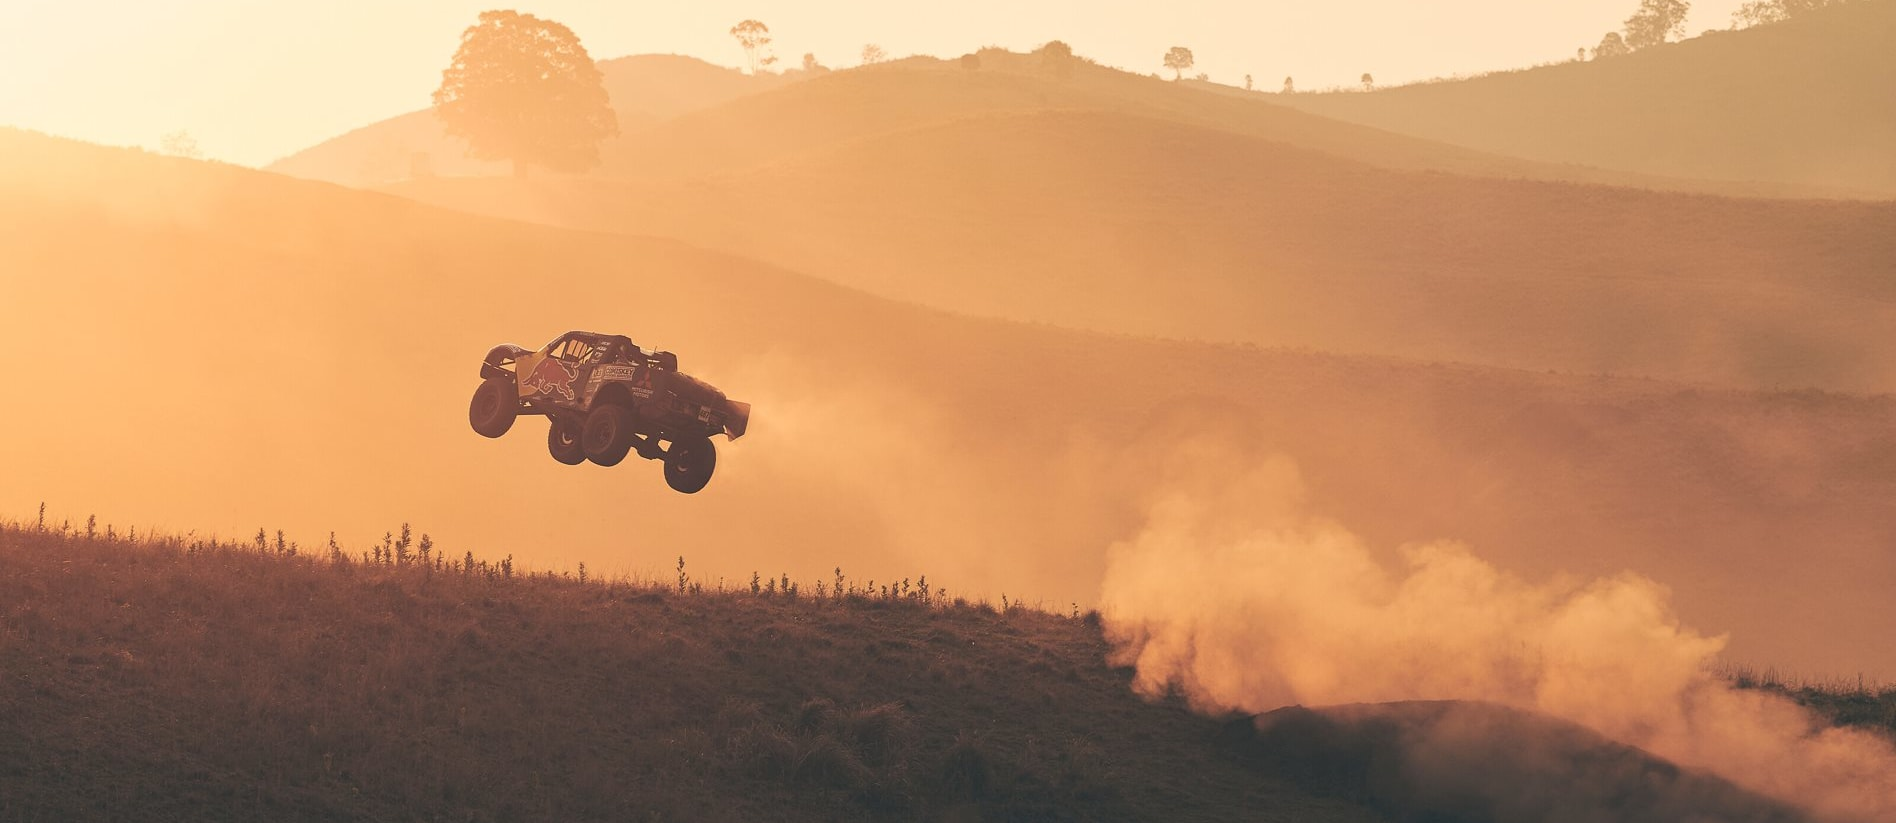 Killing drones and rolling Trophy Trucks: behind the scenes of Toby Price's epic new Red bull vid